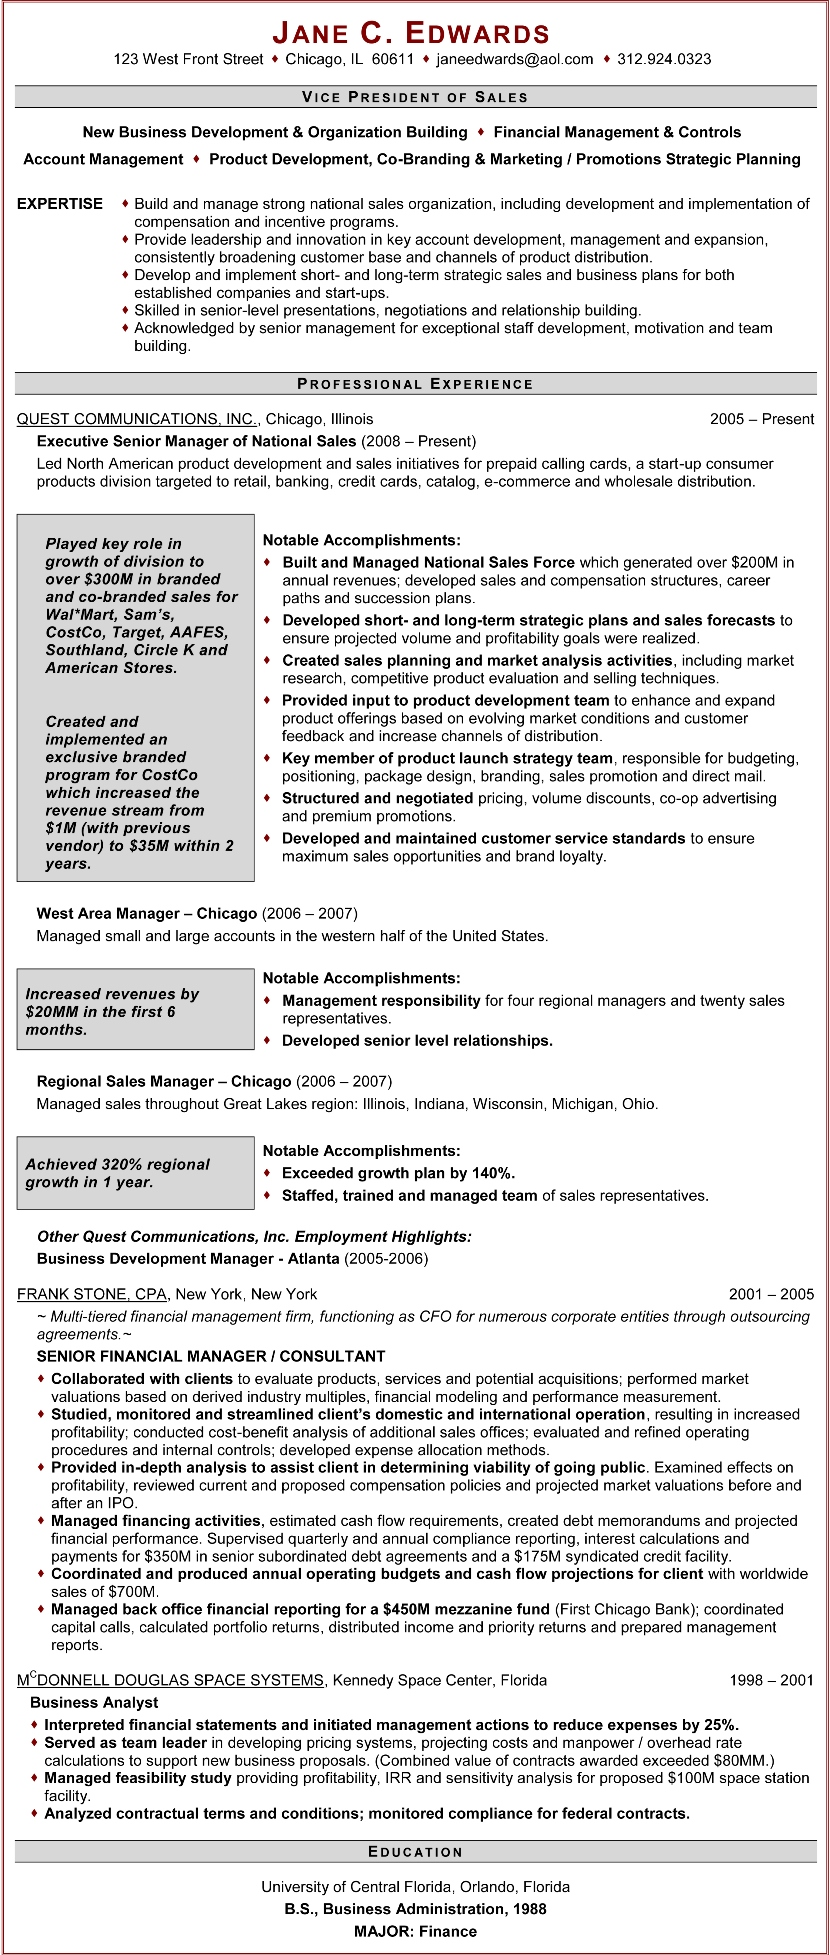 resume examples for vp of marketing